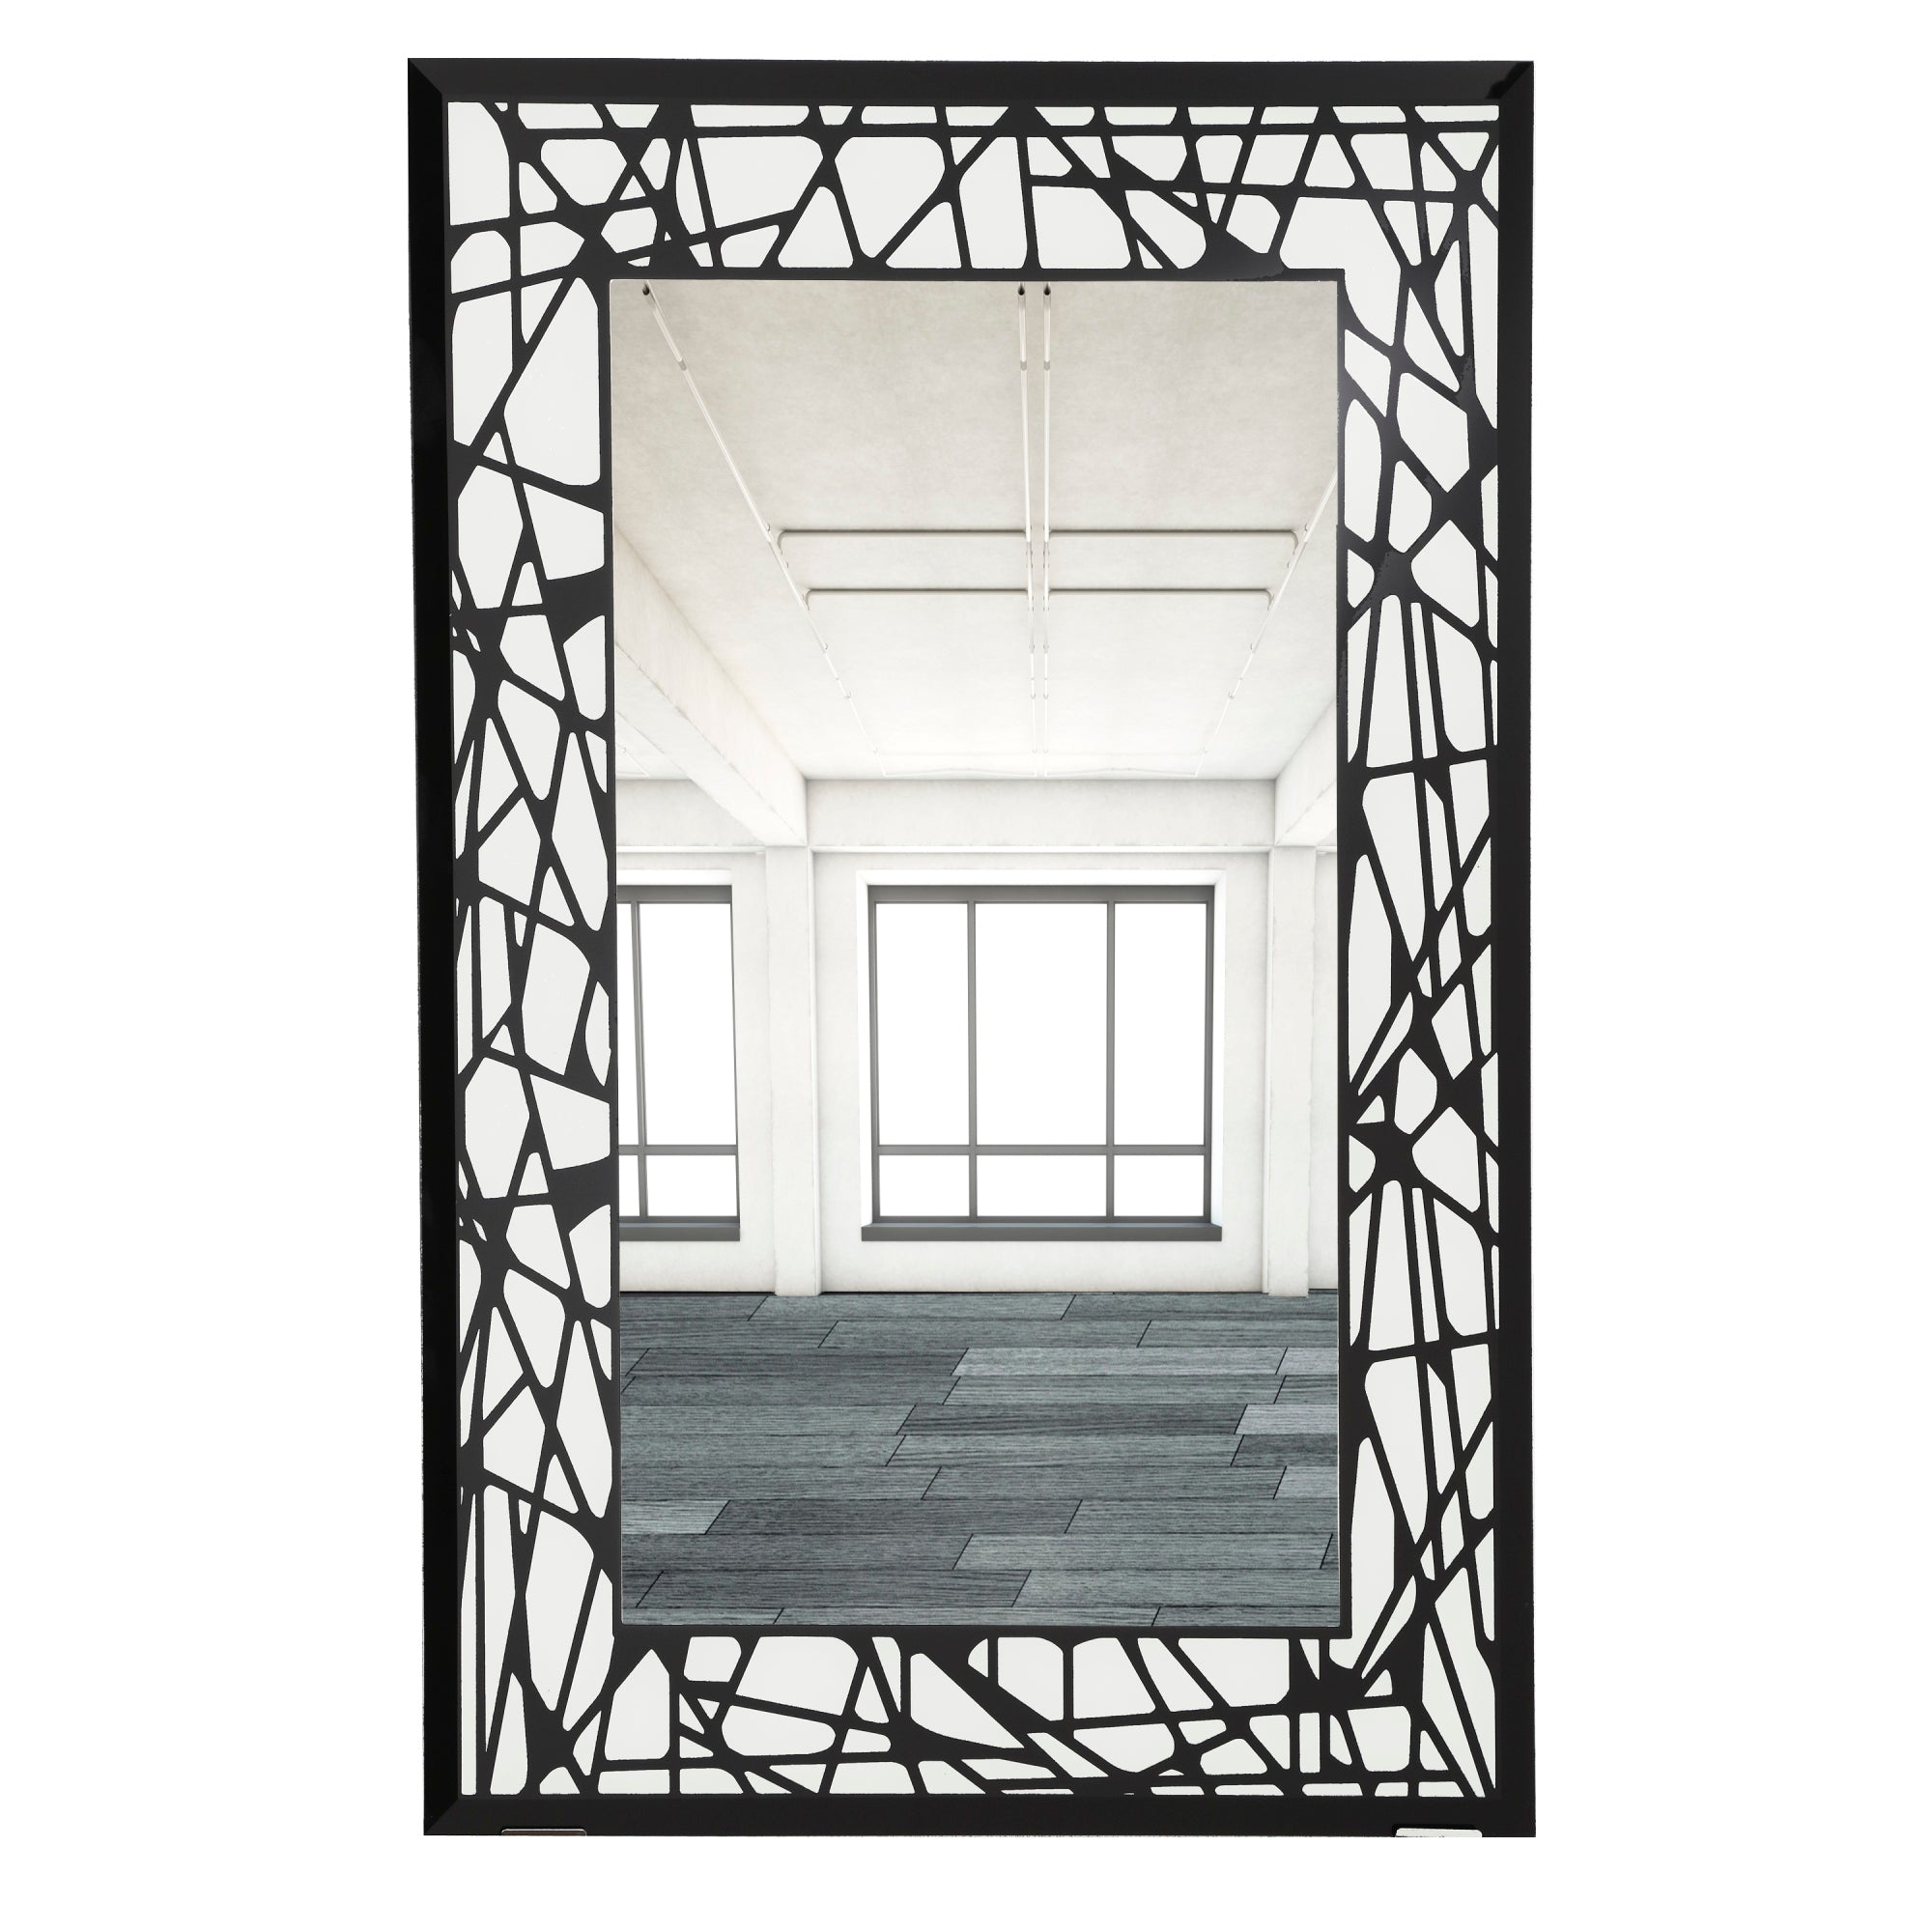 M00139 16 X 24 Rectangular Beveled Wall Mirror Frameless Decorative Mirror With Black And White Abstract Shapes Pattern Border Black White